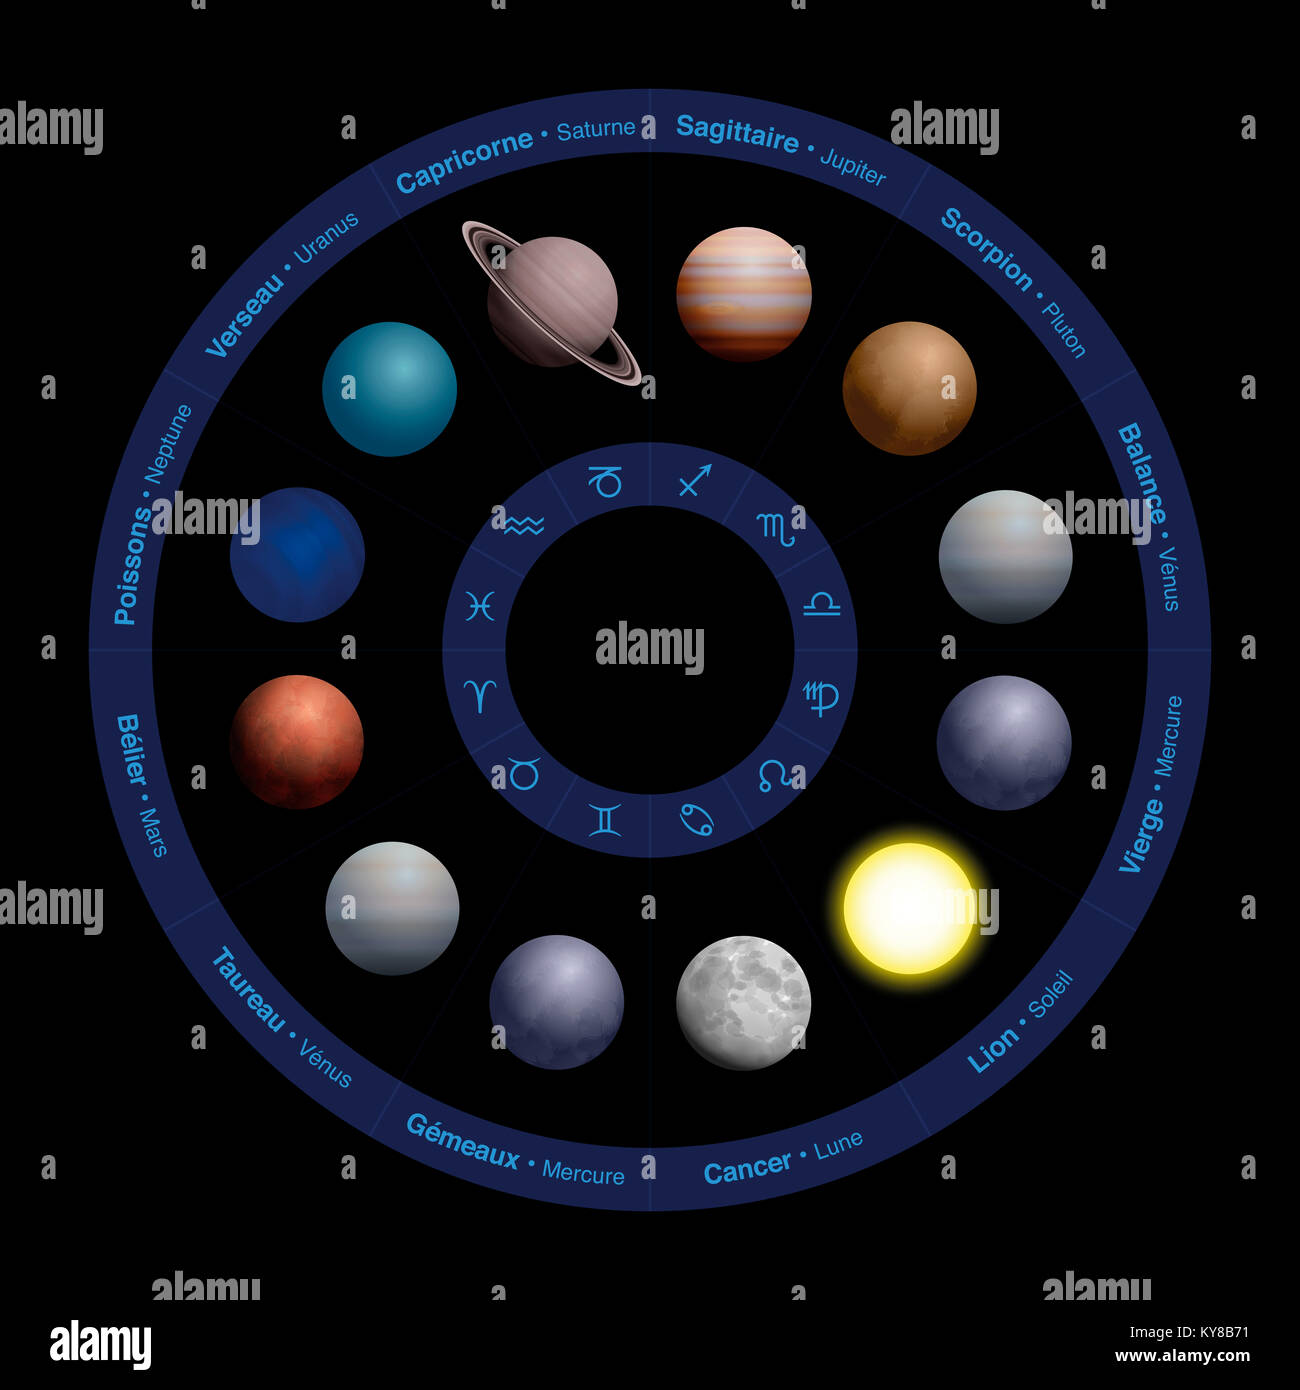 Planets of astrology - FRENCH NAMES, realistic design, in zodiac circle - with names in the outer circle and symbols - Stock Image